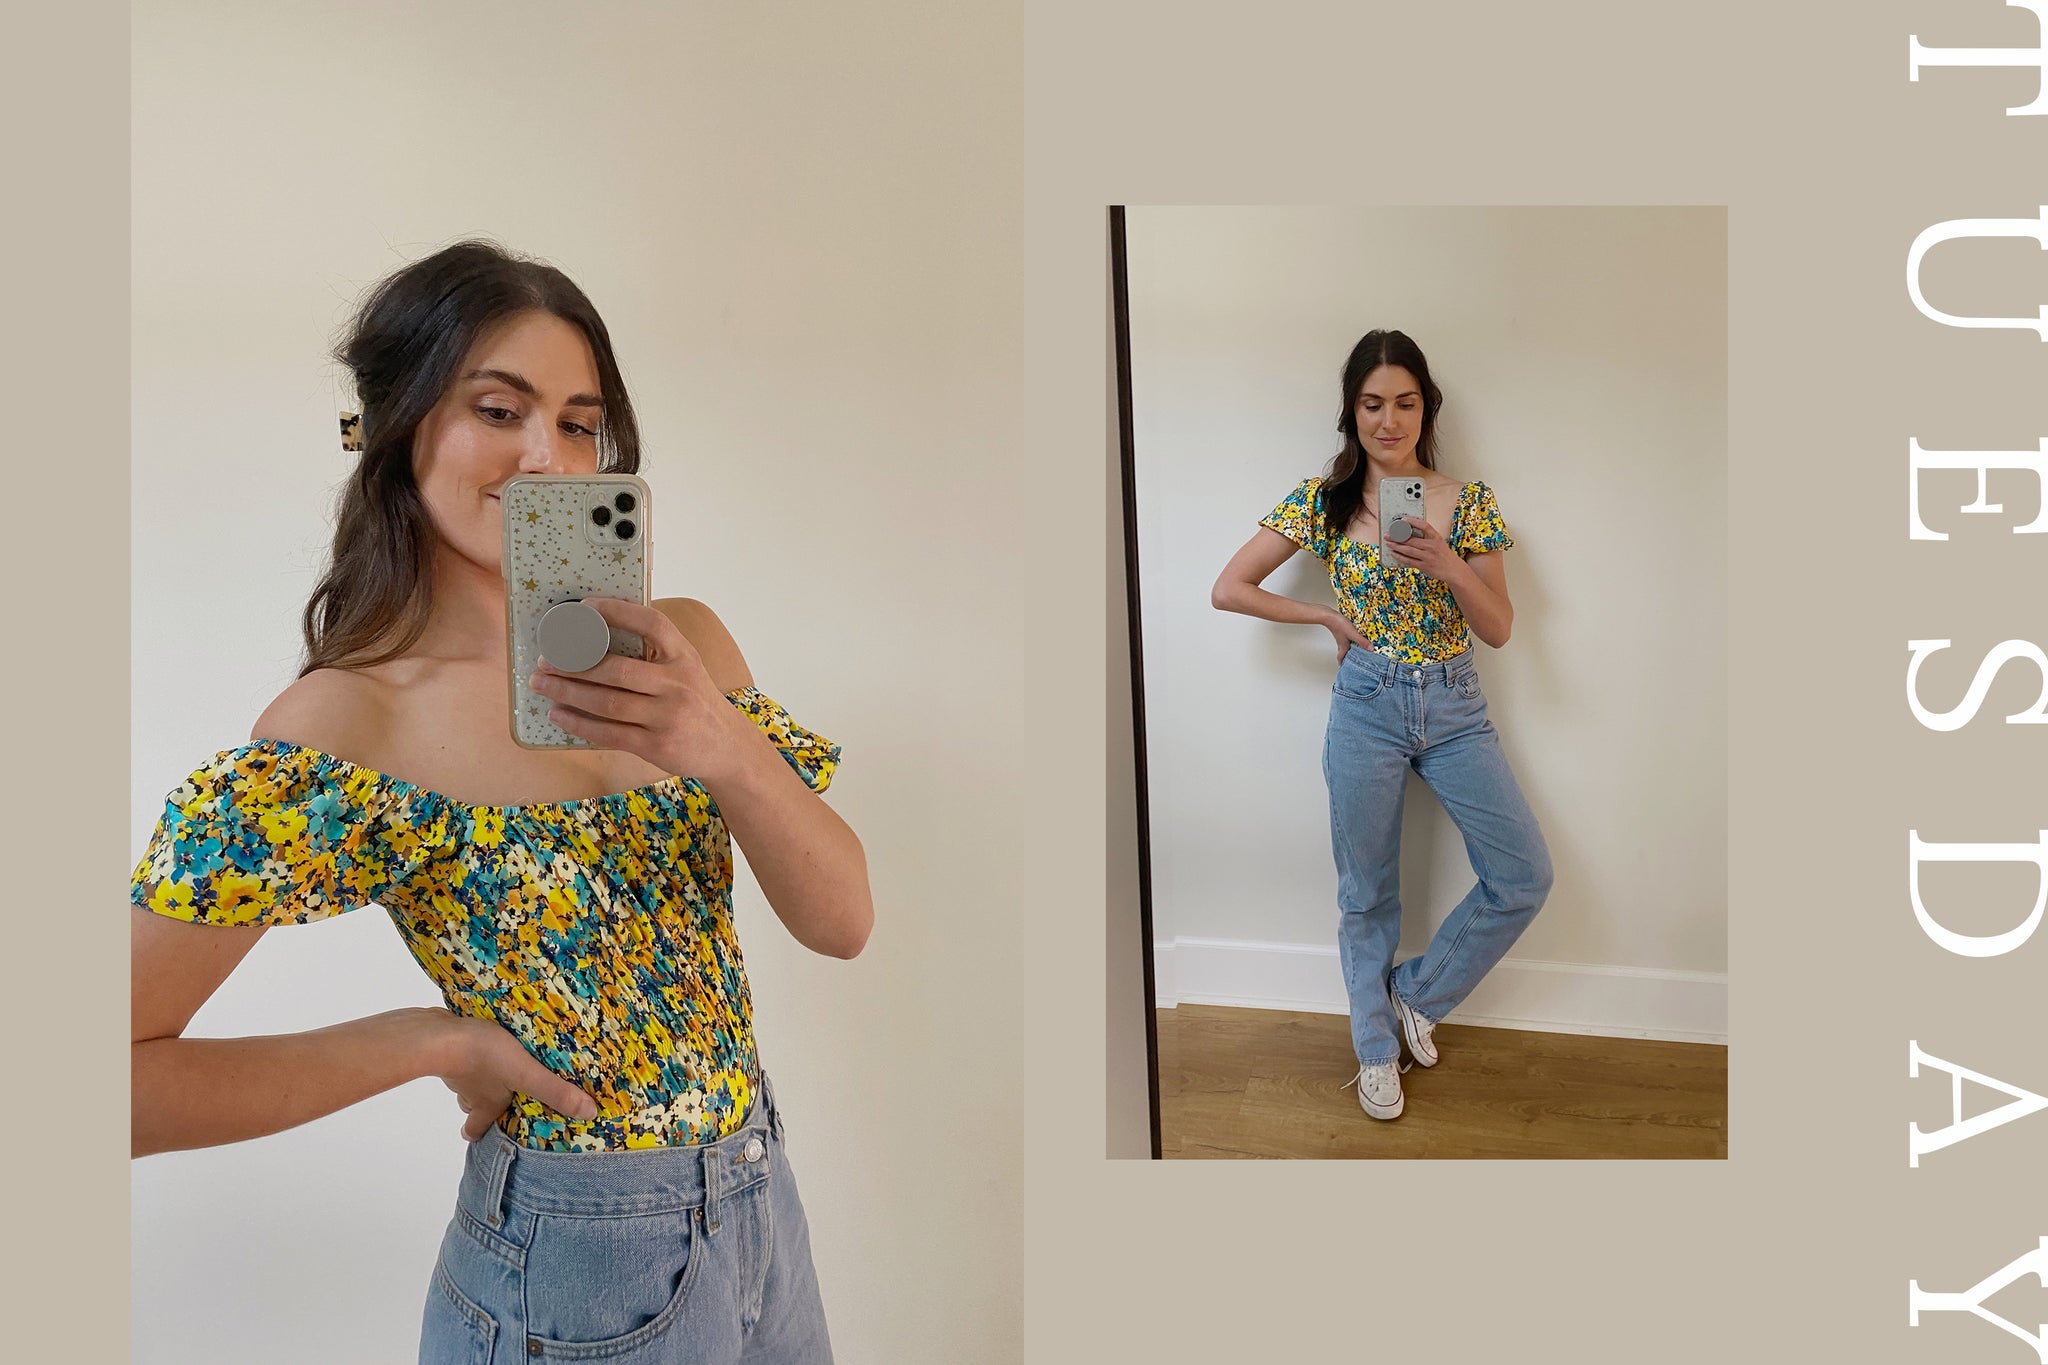 woman posing in floral top and jeans